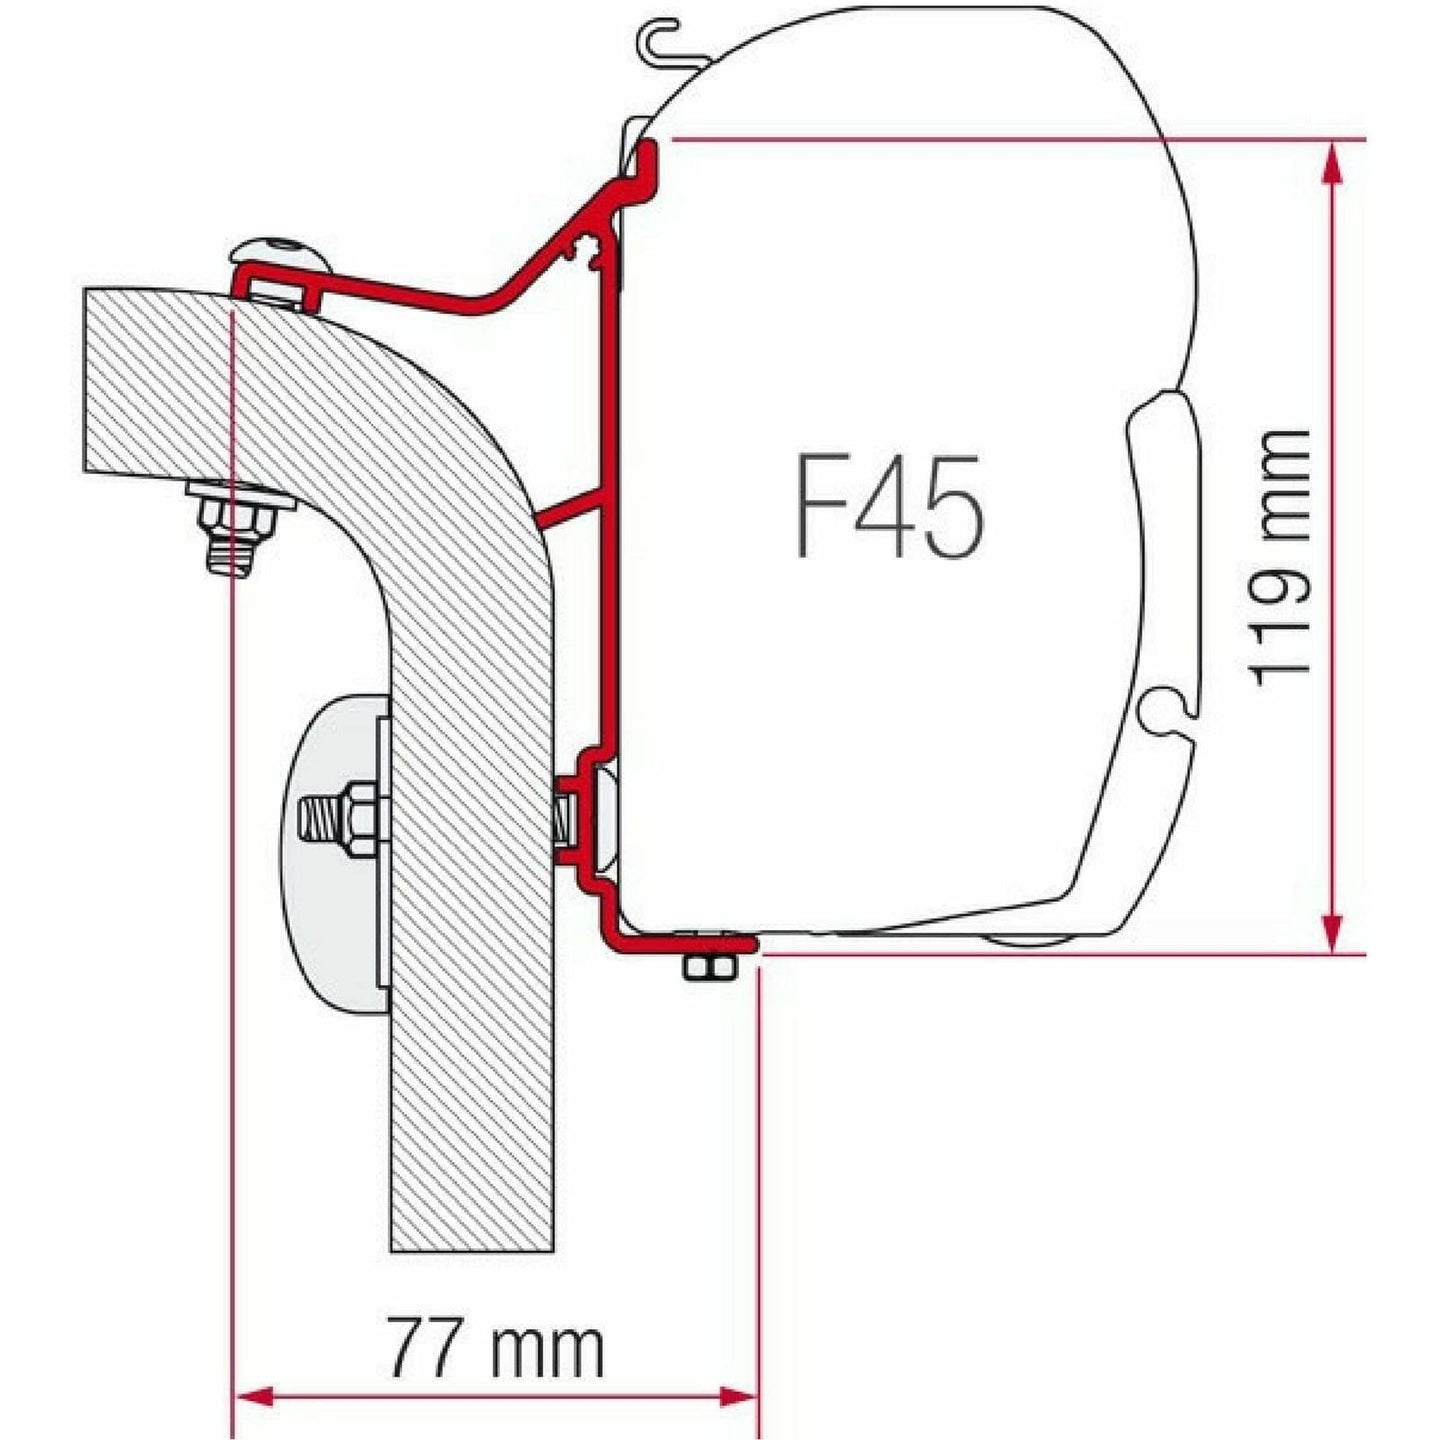 Fiamma Hymer Van/B2 Awning Adapter Kit made by Fiamma. A Awning Adapter sold by Quality Caravan Awnings